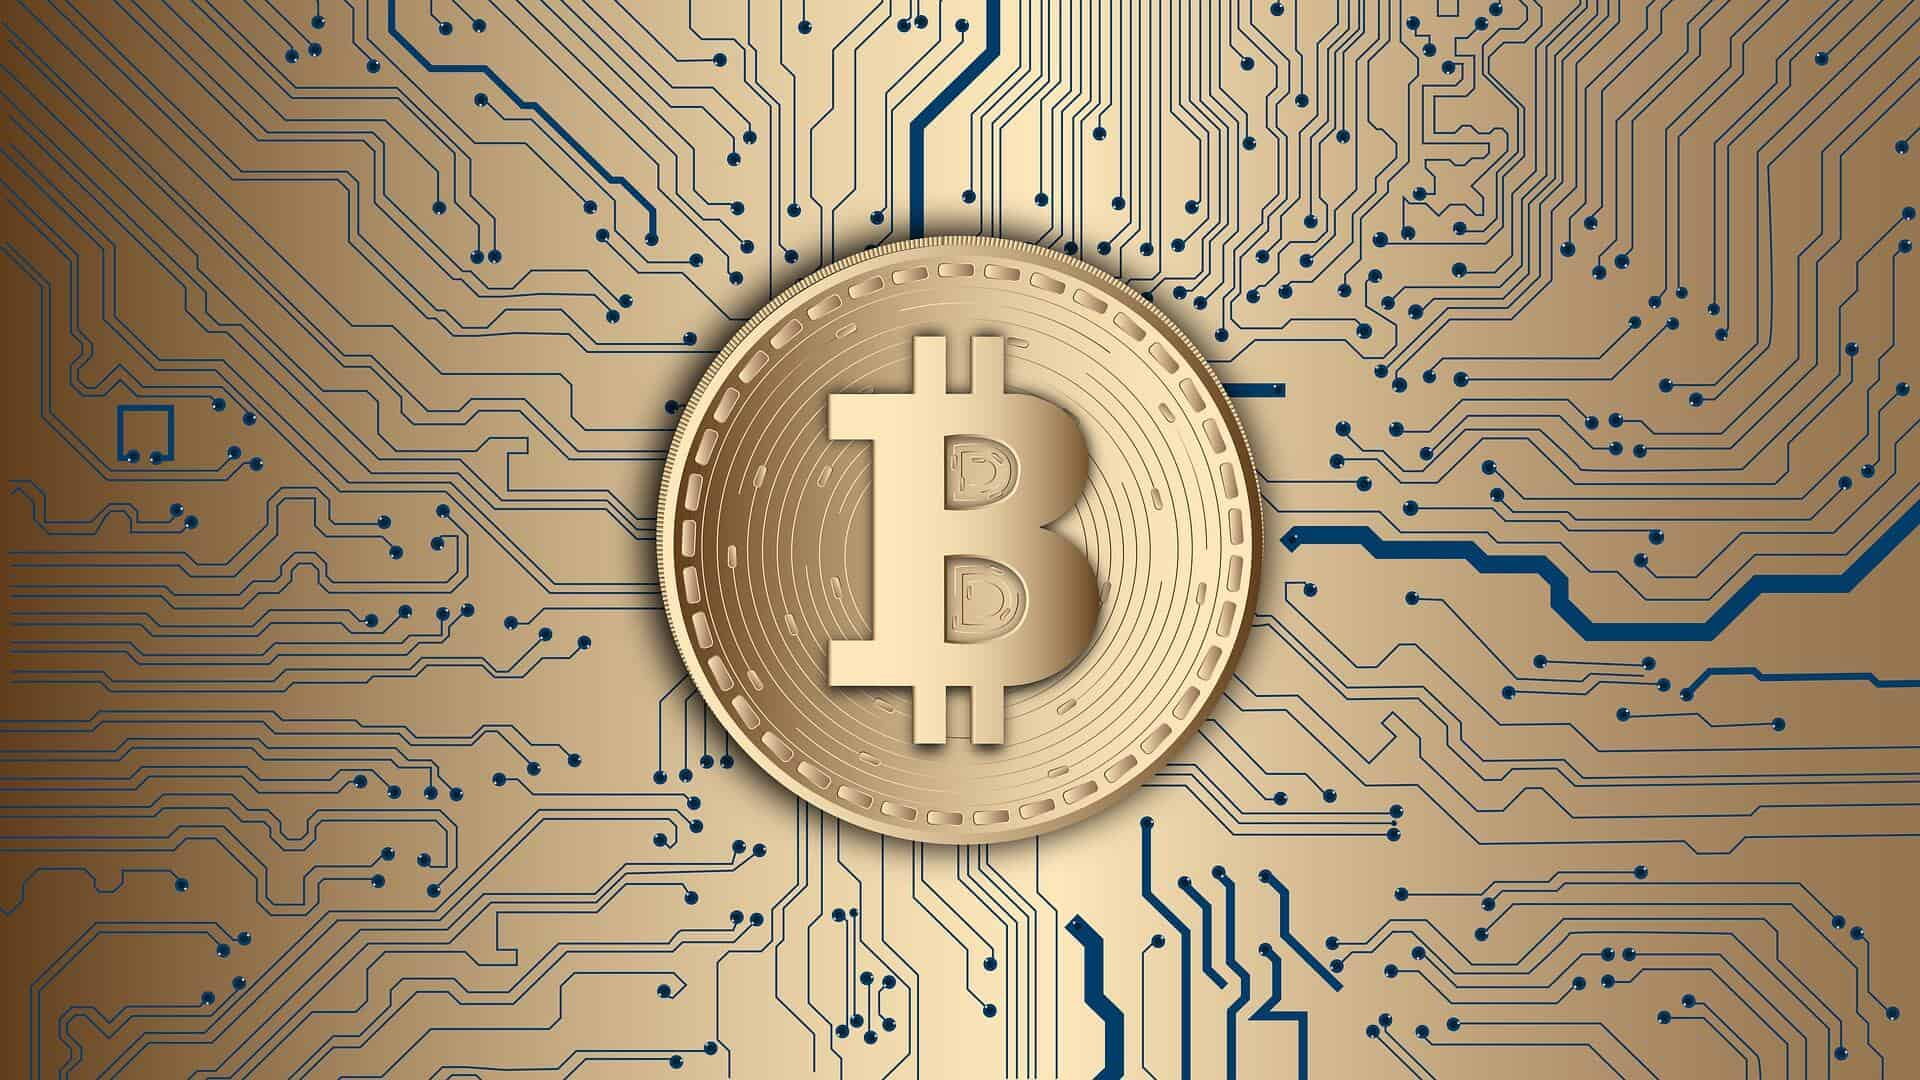 Will Huge Spike in the Price of Bitcoin Lead to FOMO